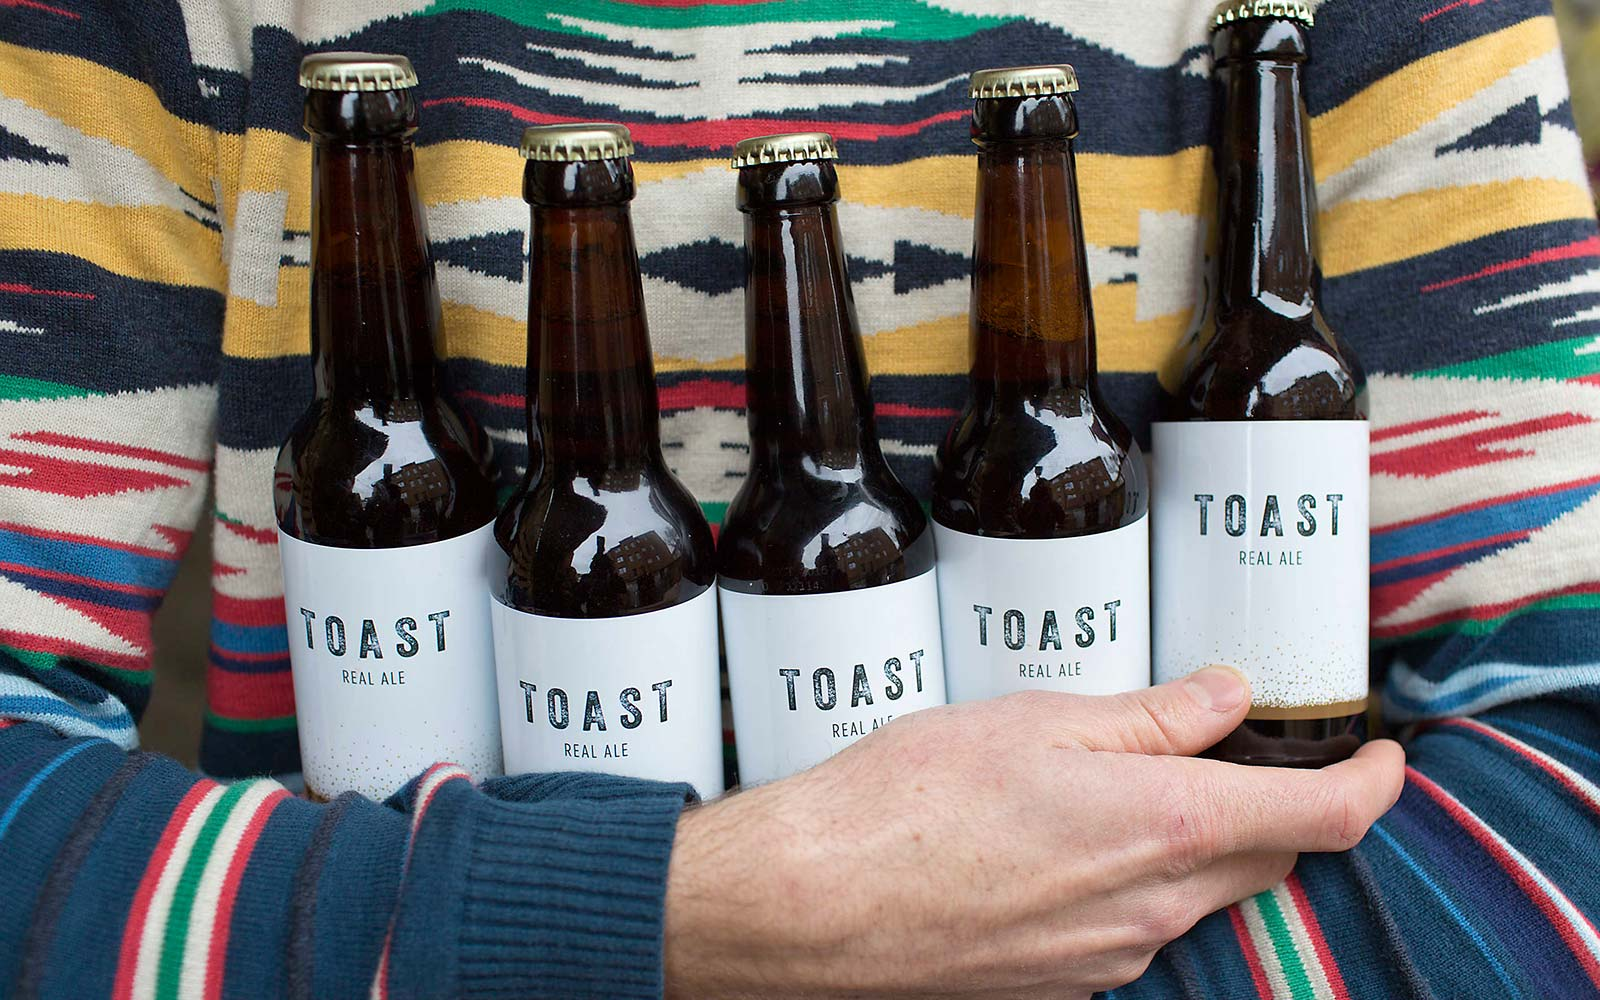 This Beer Made From Trash Just Arrived in the U.S. — and It's Really Popular